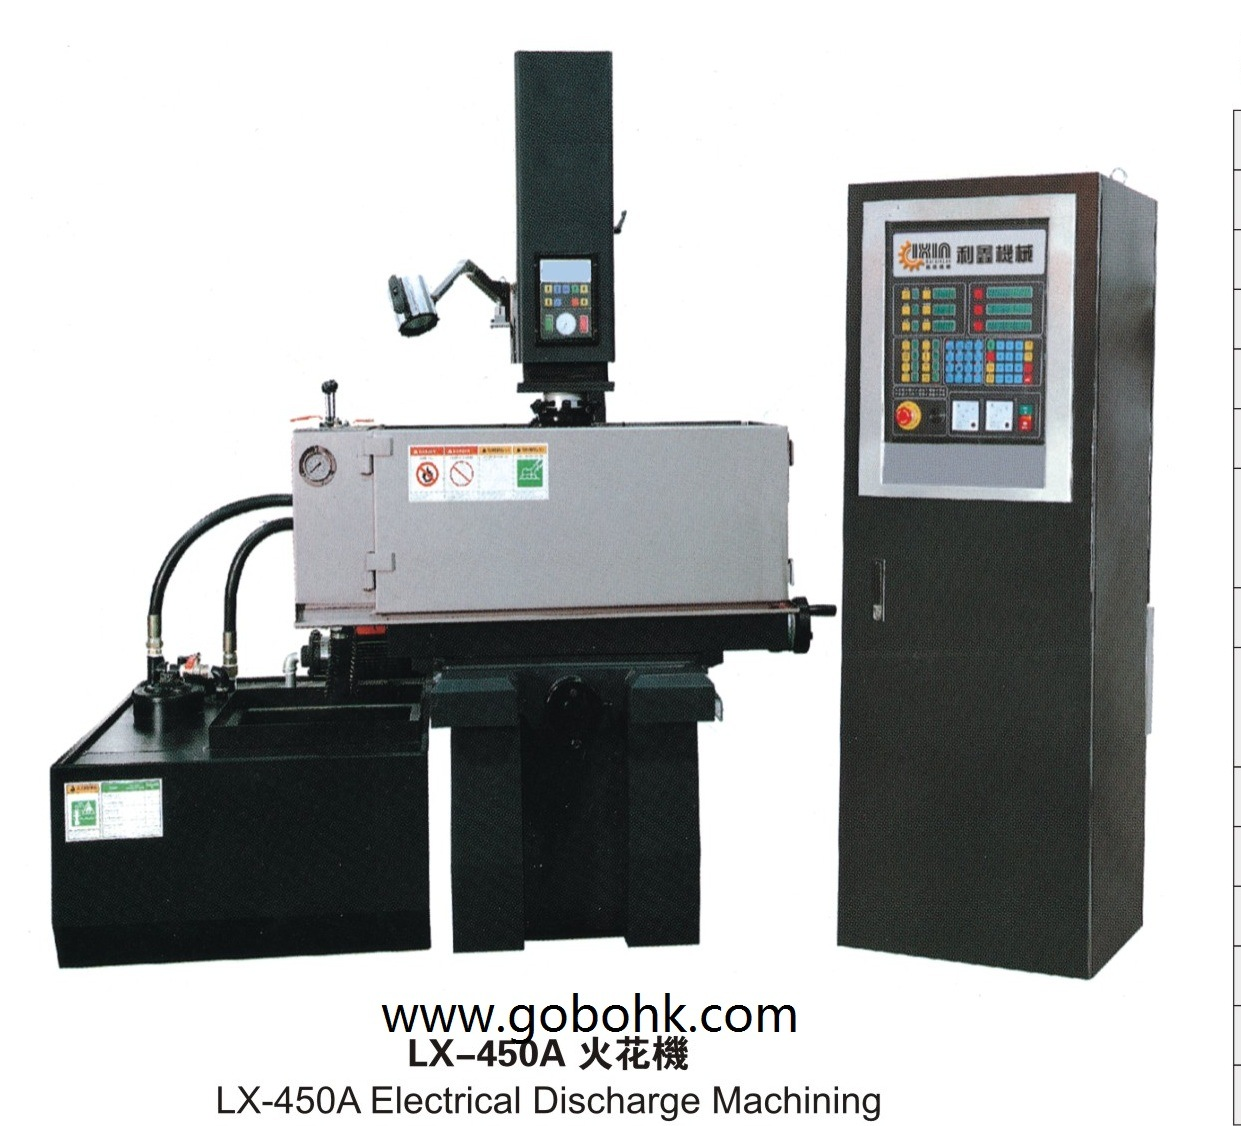 Lx-450A CNC Electrical Discharge Machine